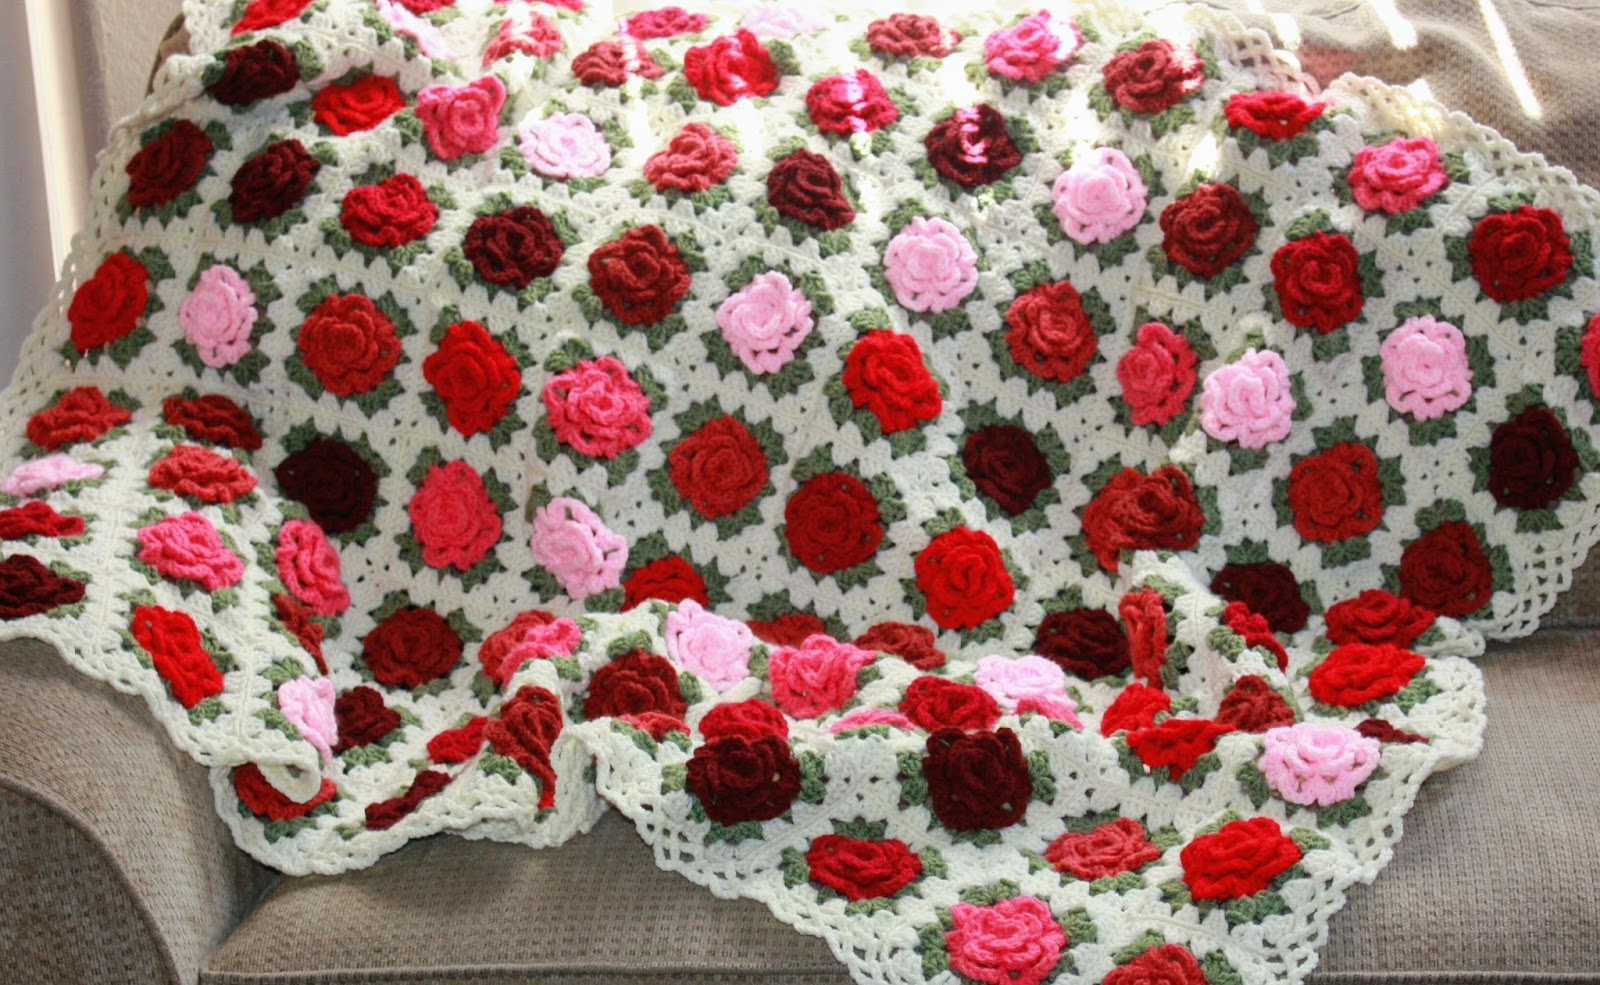 Apple Blossom Dreams Pink And Red Granny Rose Afghan Of Love